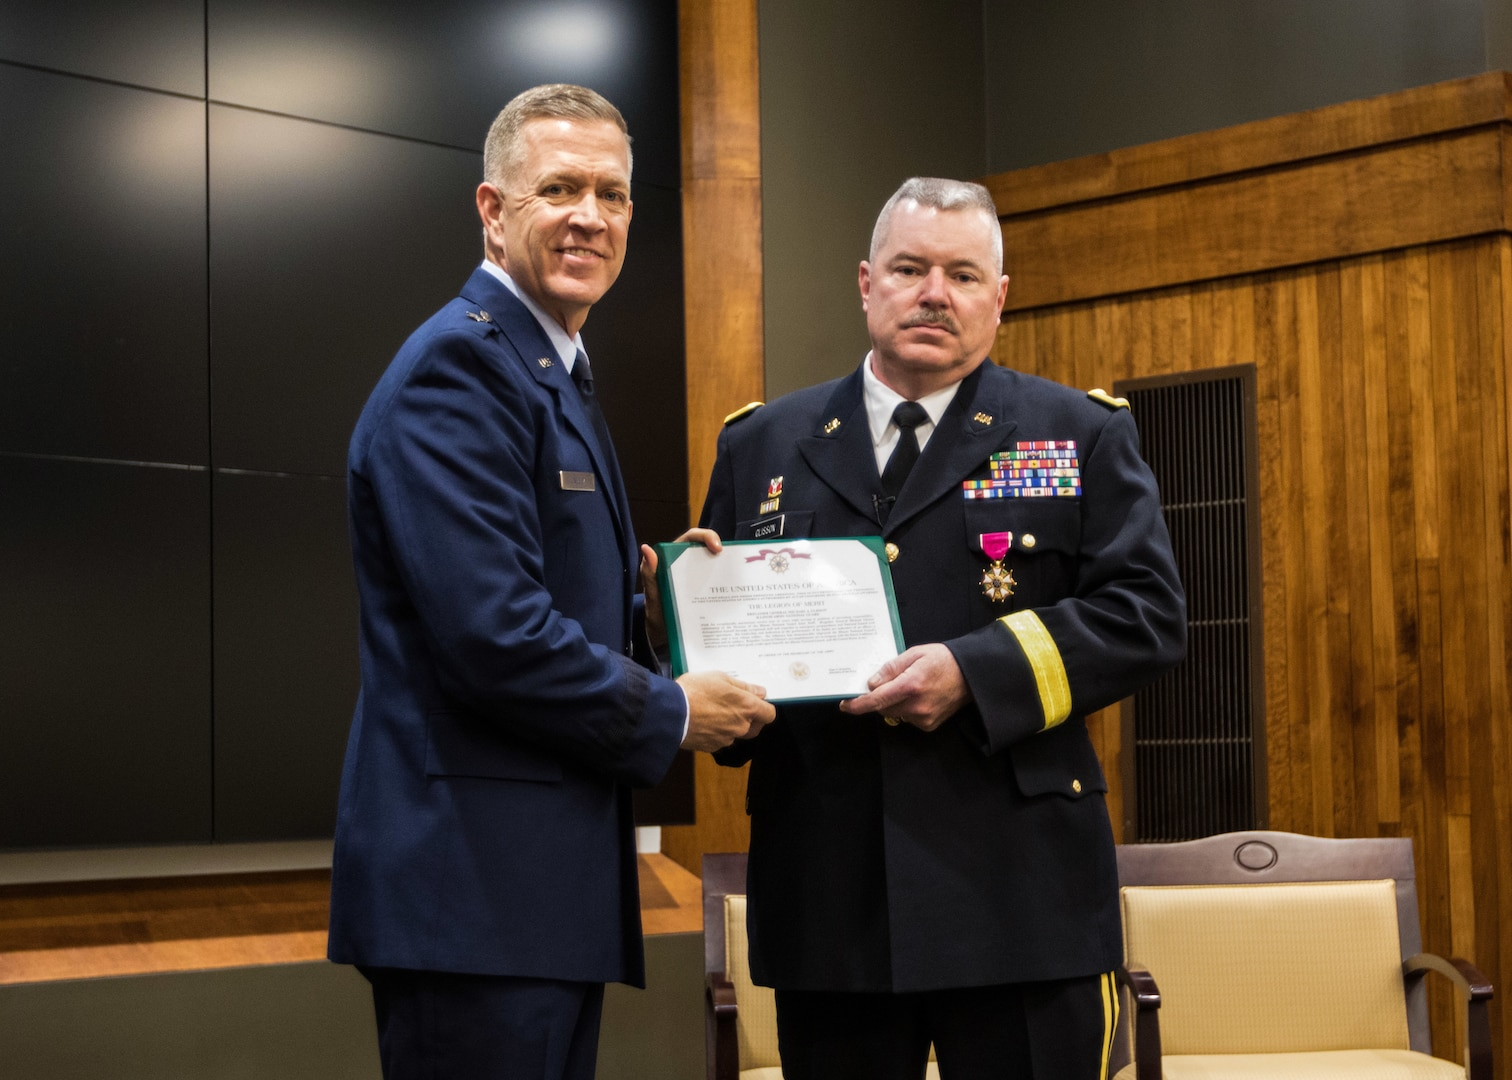 Brig. Gen. Michael Glisson of Festus, Missouri, stands with Brig. Gen. Richard Neely of Springfield, Illinois, the Adjutant General of the Illinois National Guard, after being presented the Legion of Merit at his retirement ceremony March 7, at the Illinois Military Academy in Springfield, Illinois.